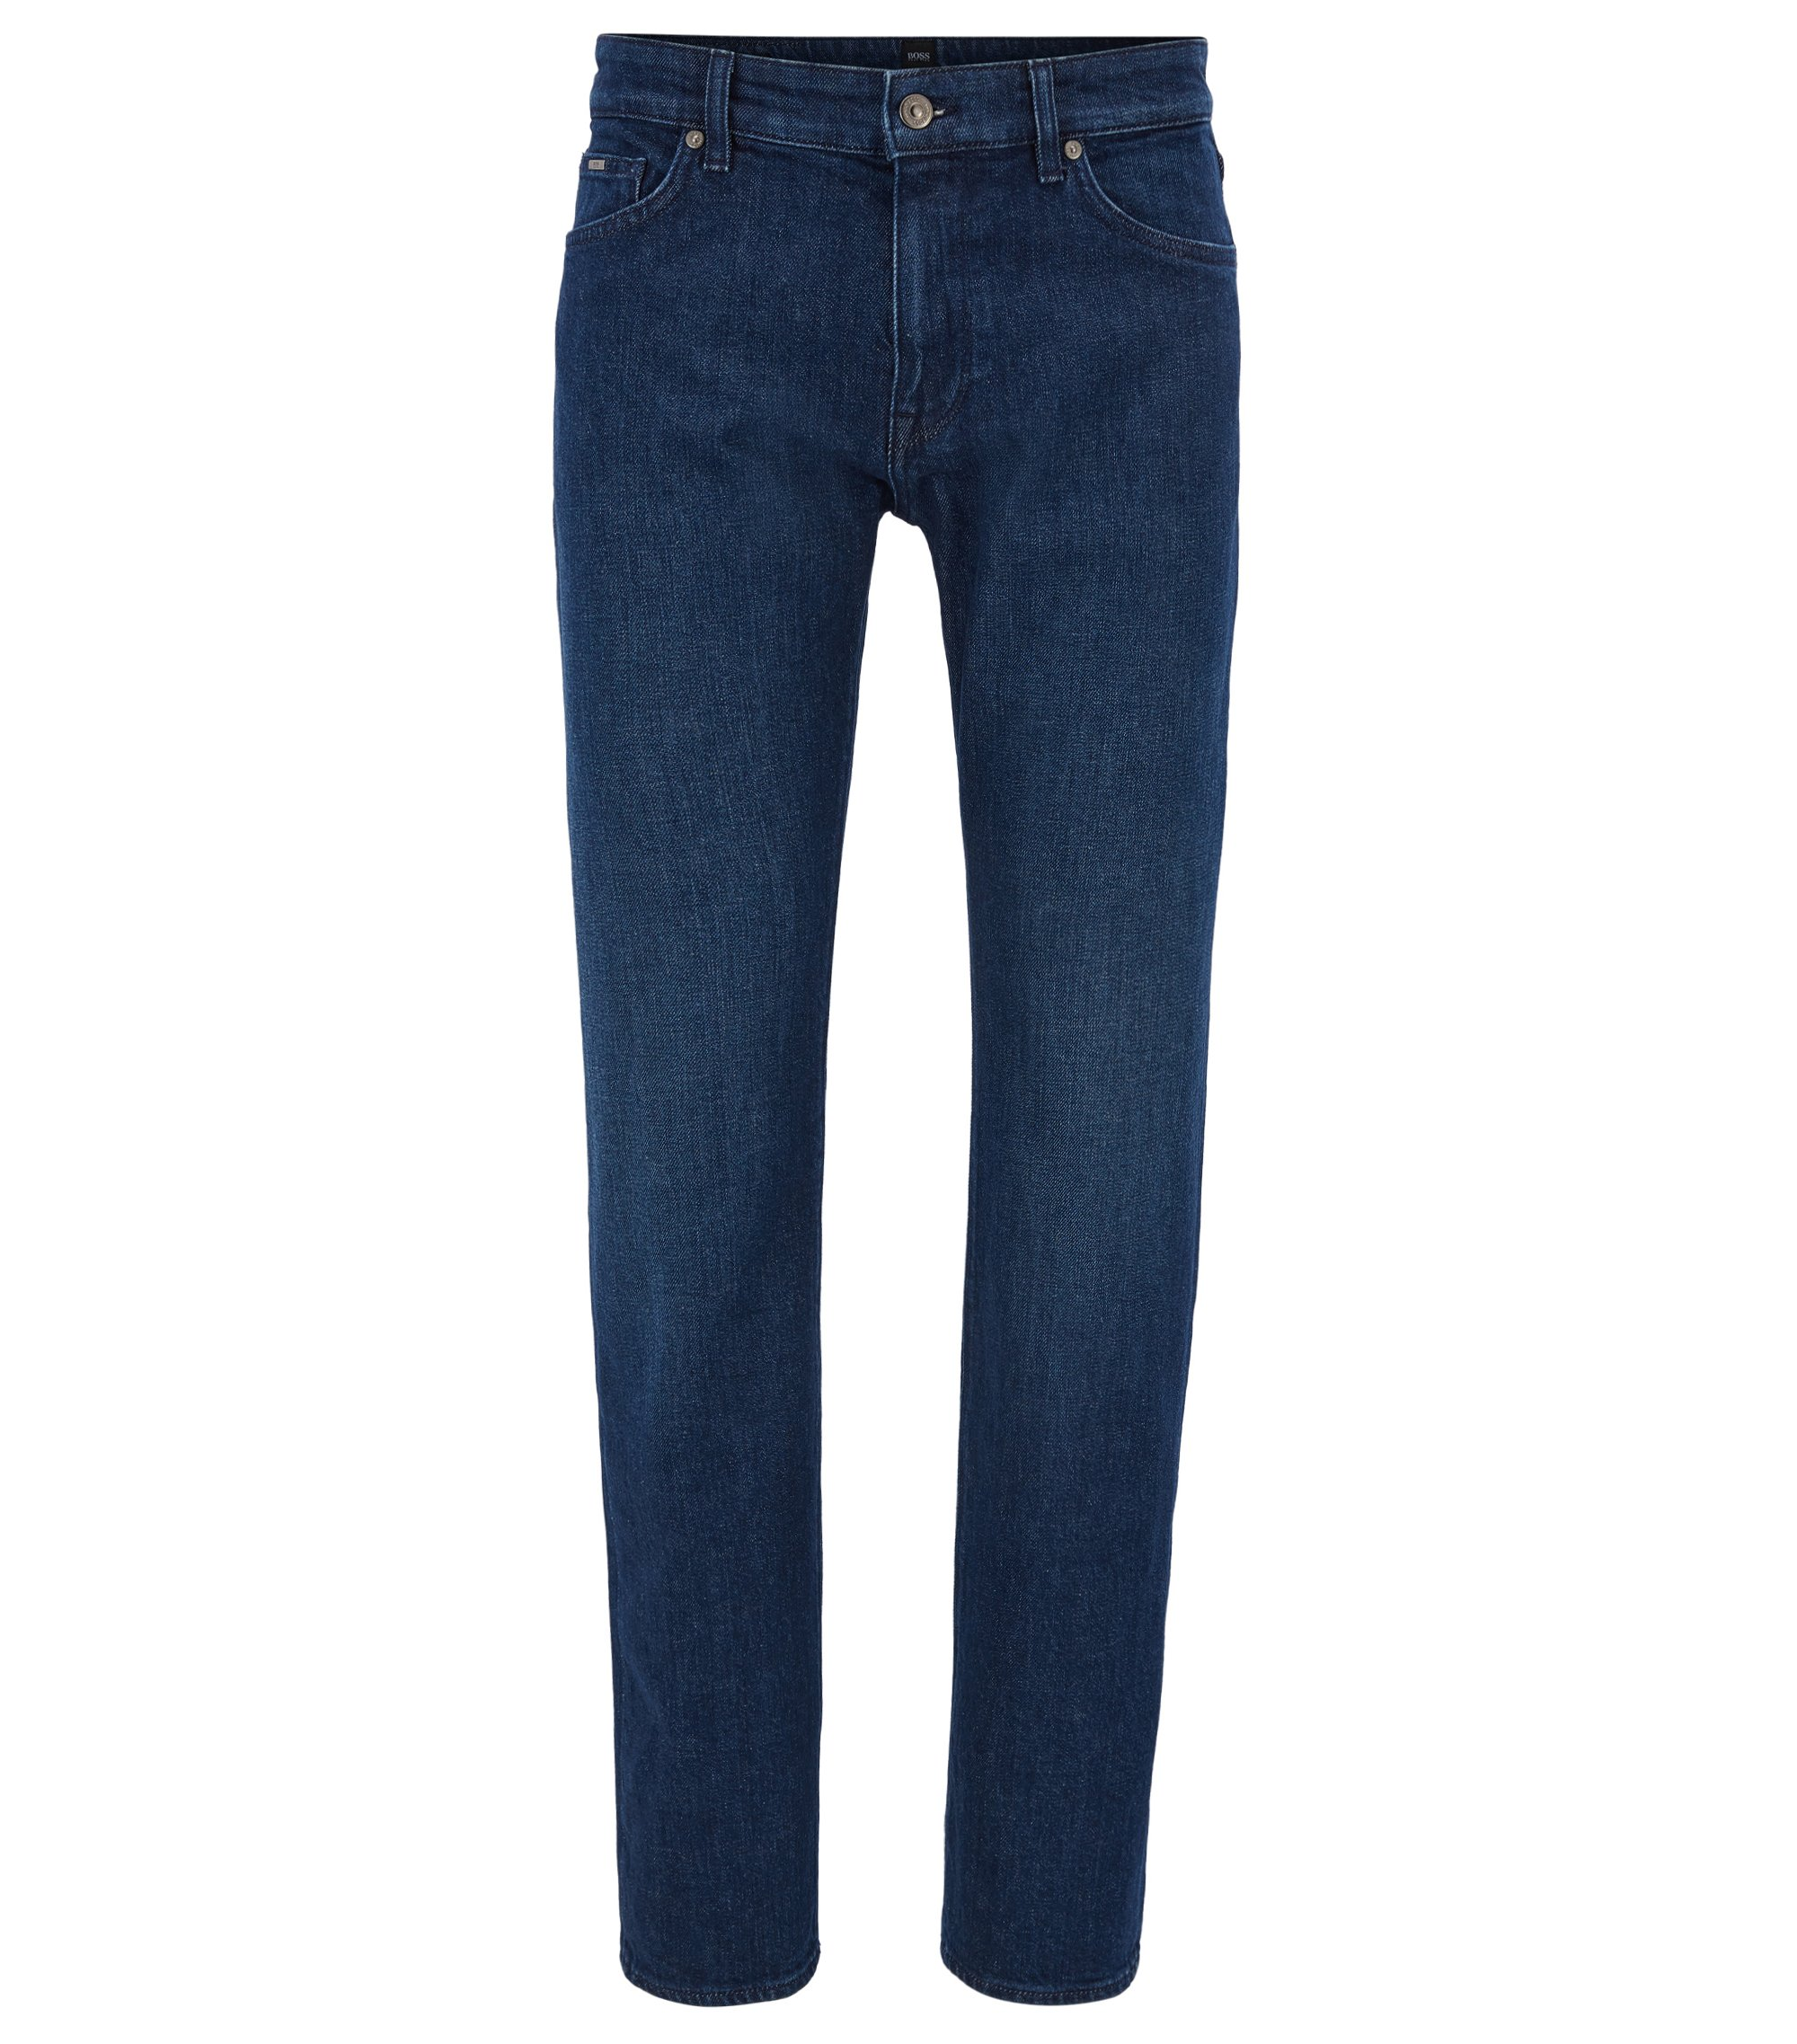 Jeans regular fit in denim elasticizzato blu scuro realizzato in Italia, Blu scuro